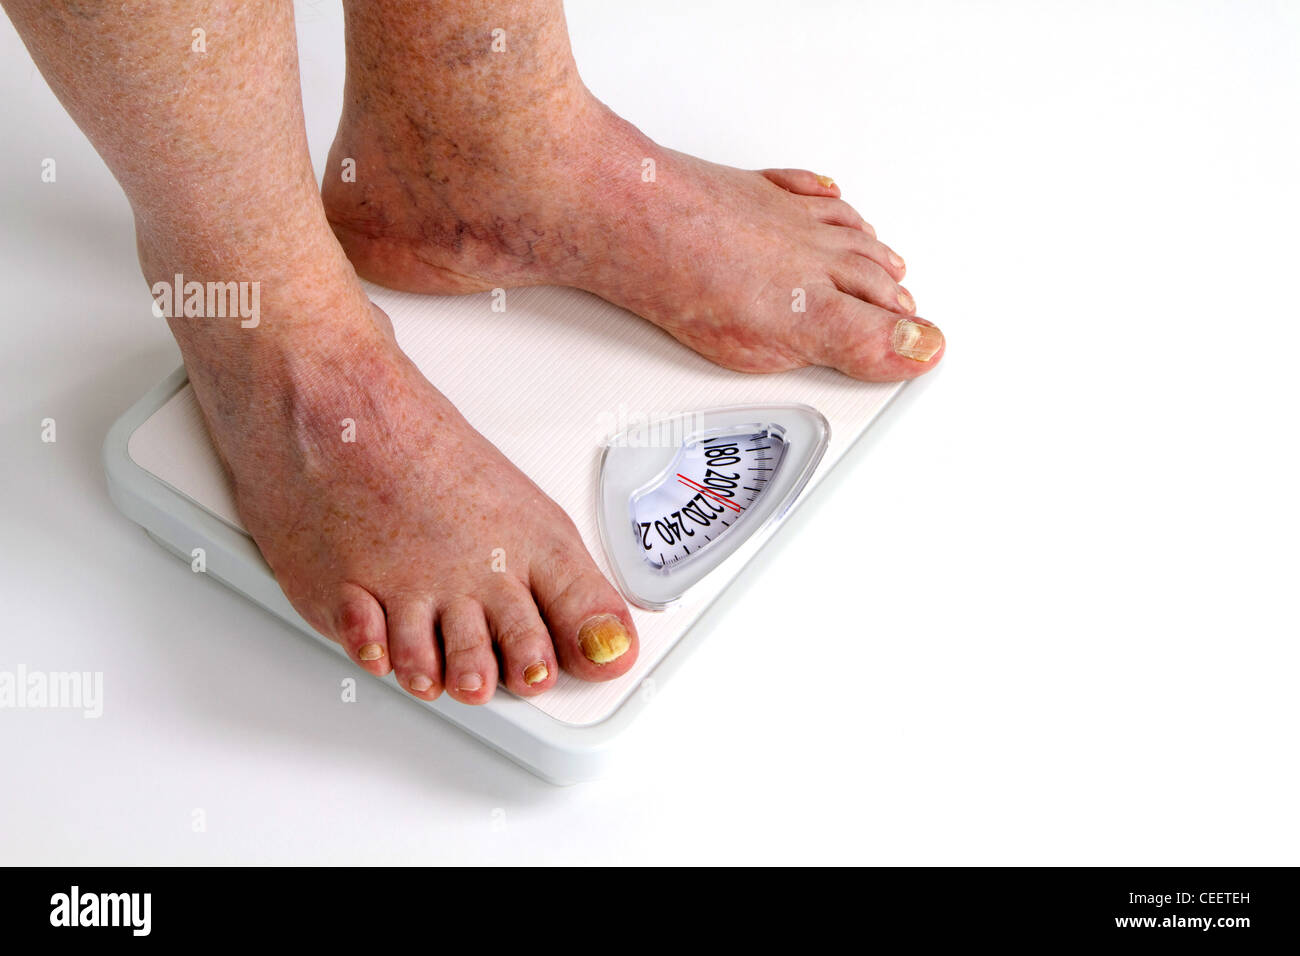 Man feet and toes stockfotos man feet and toes bilder seite 2 alamy - Pilz im badezimmer ...